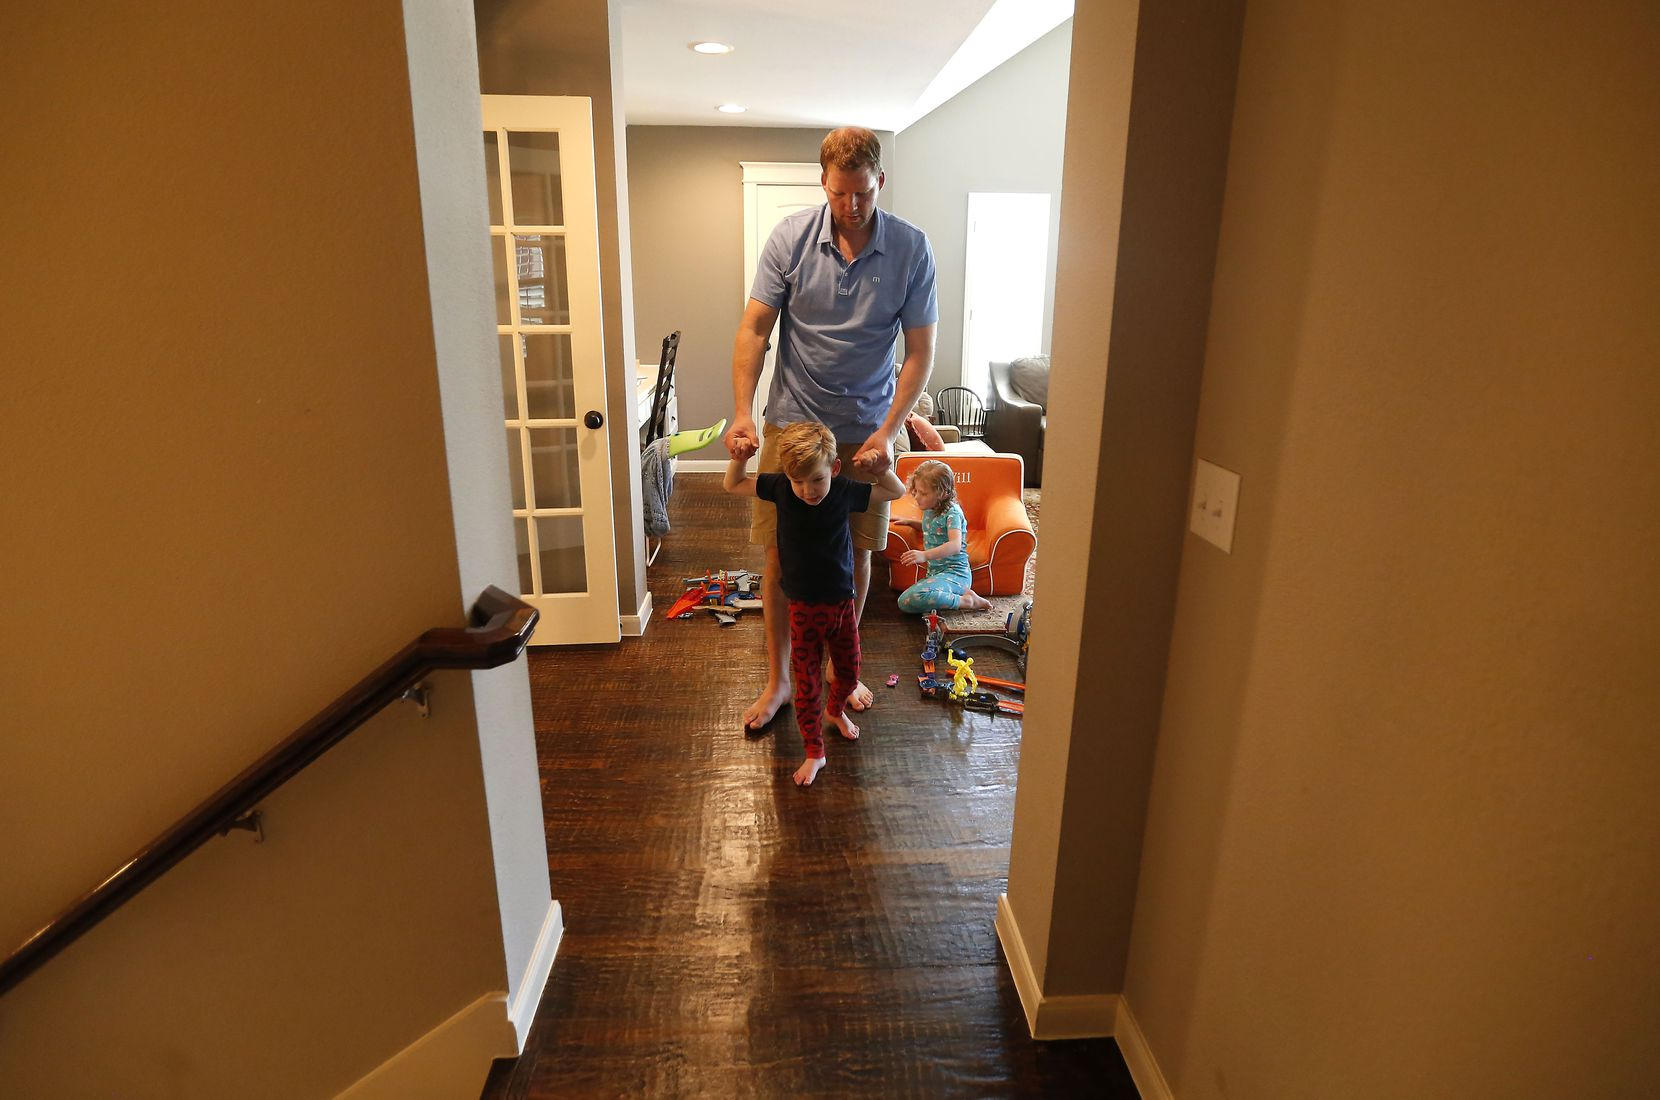 Doug Woleben helps his son, Will, walk to his bedroom at their home in McKinney, Texas, Wednesday, June 20, 2018.